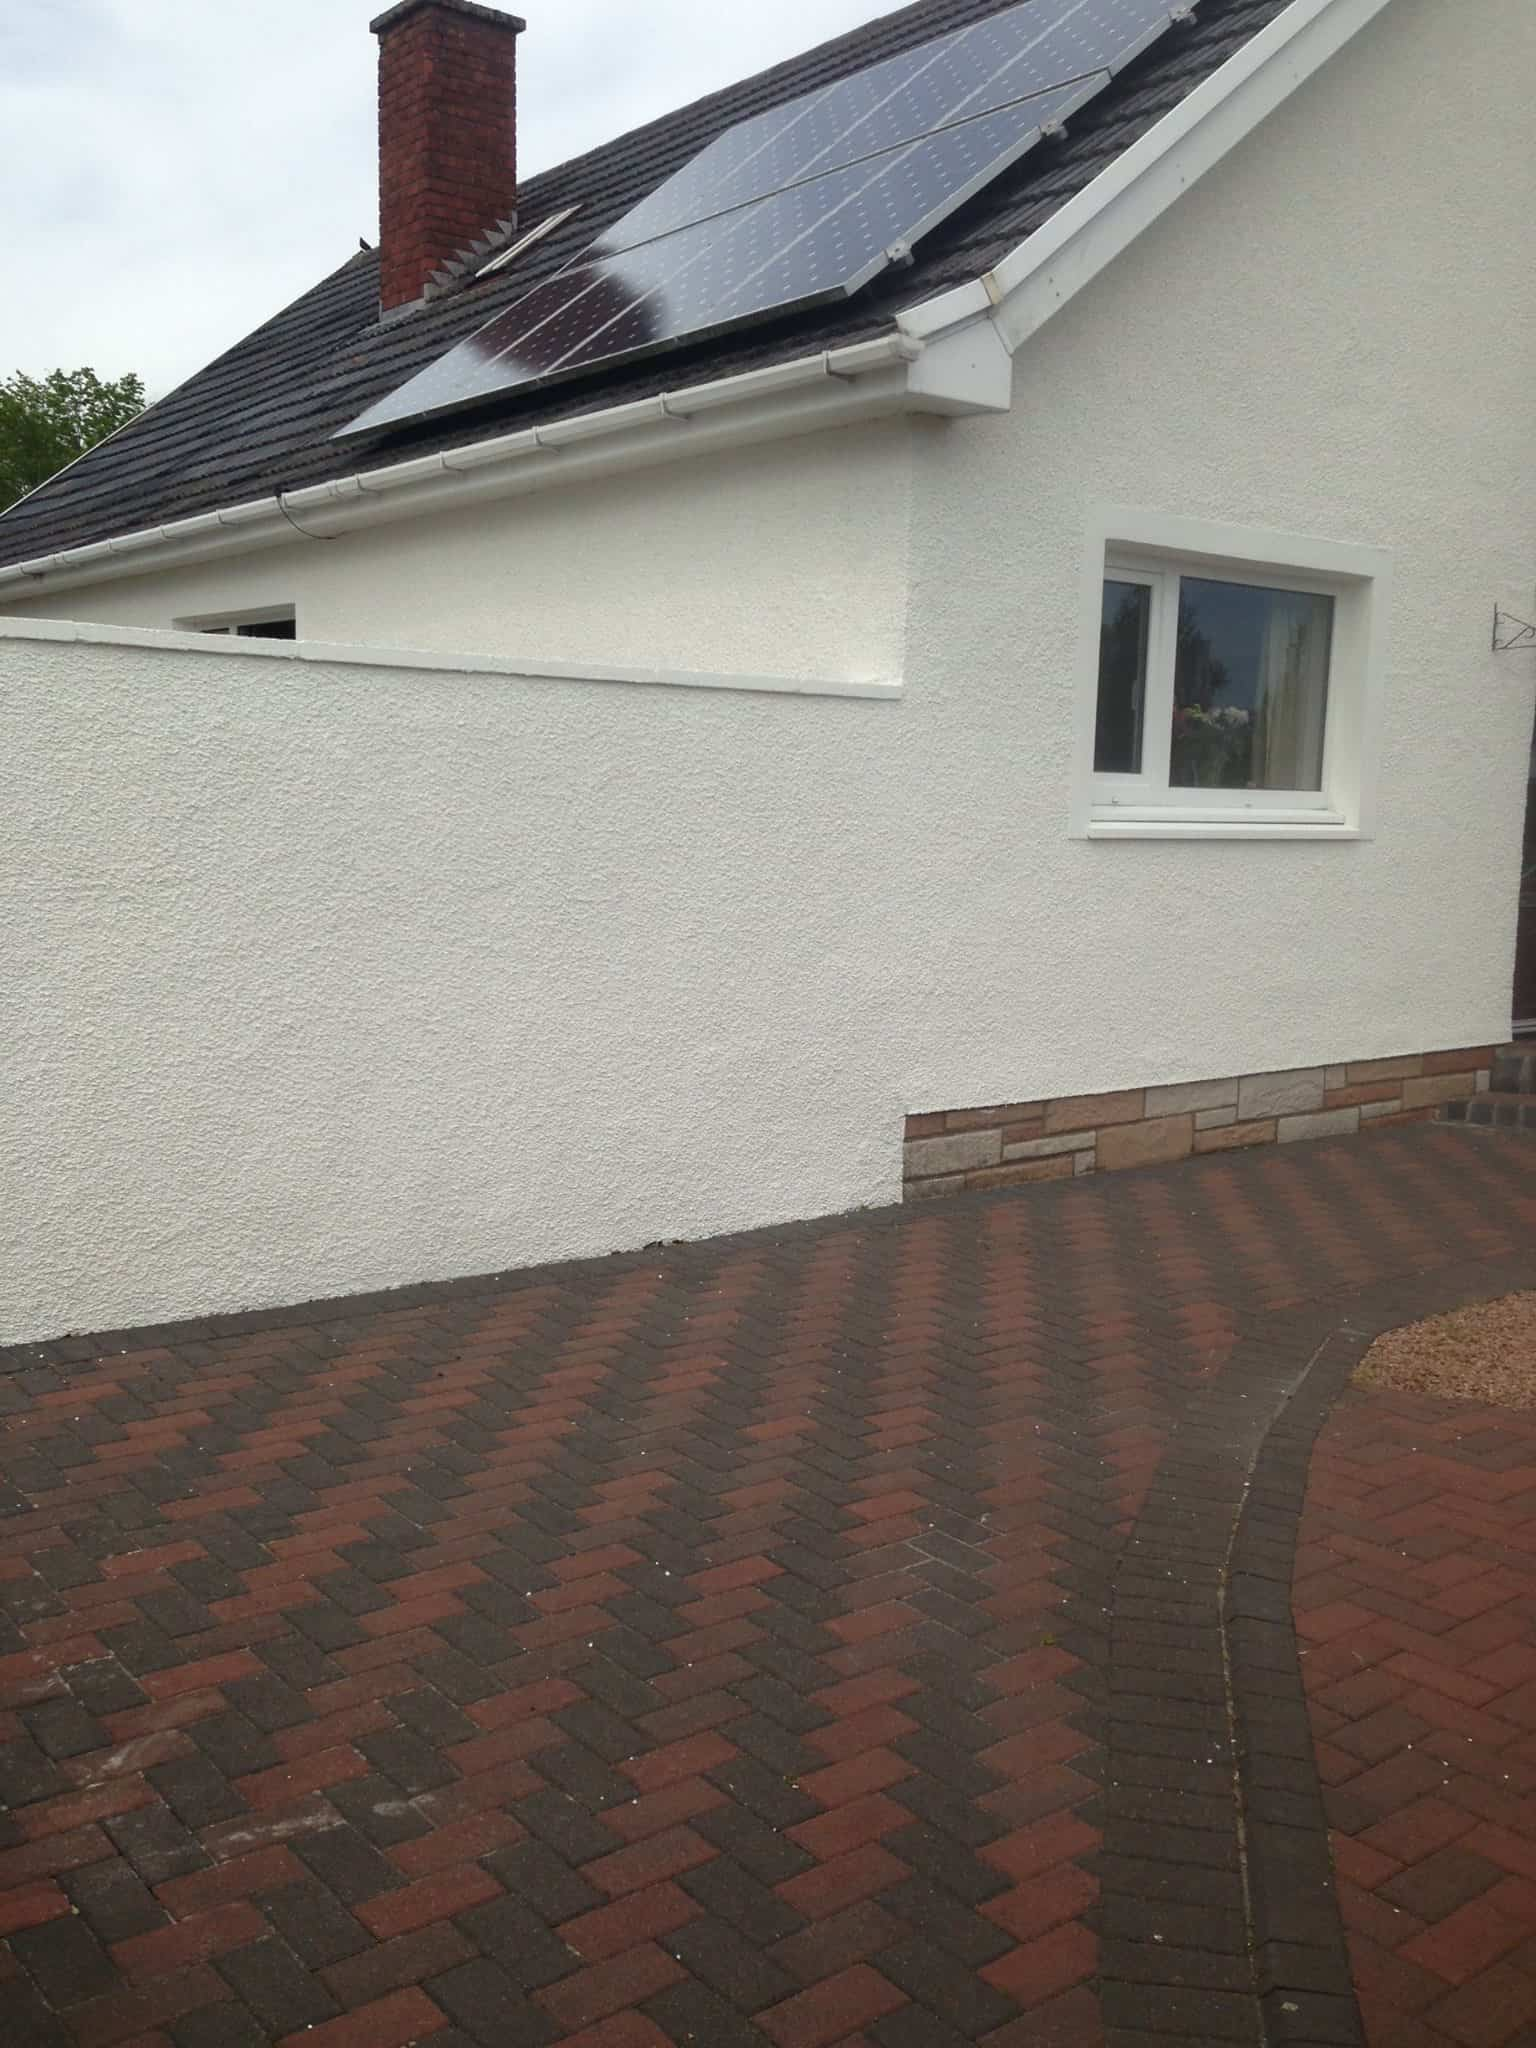 gilchrist house and driveway after